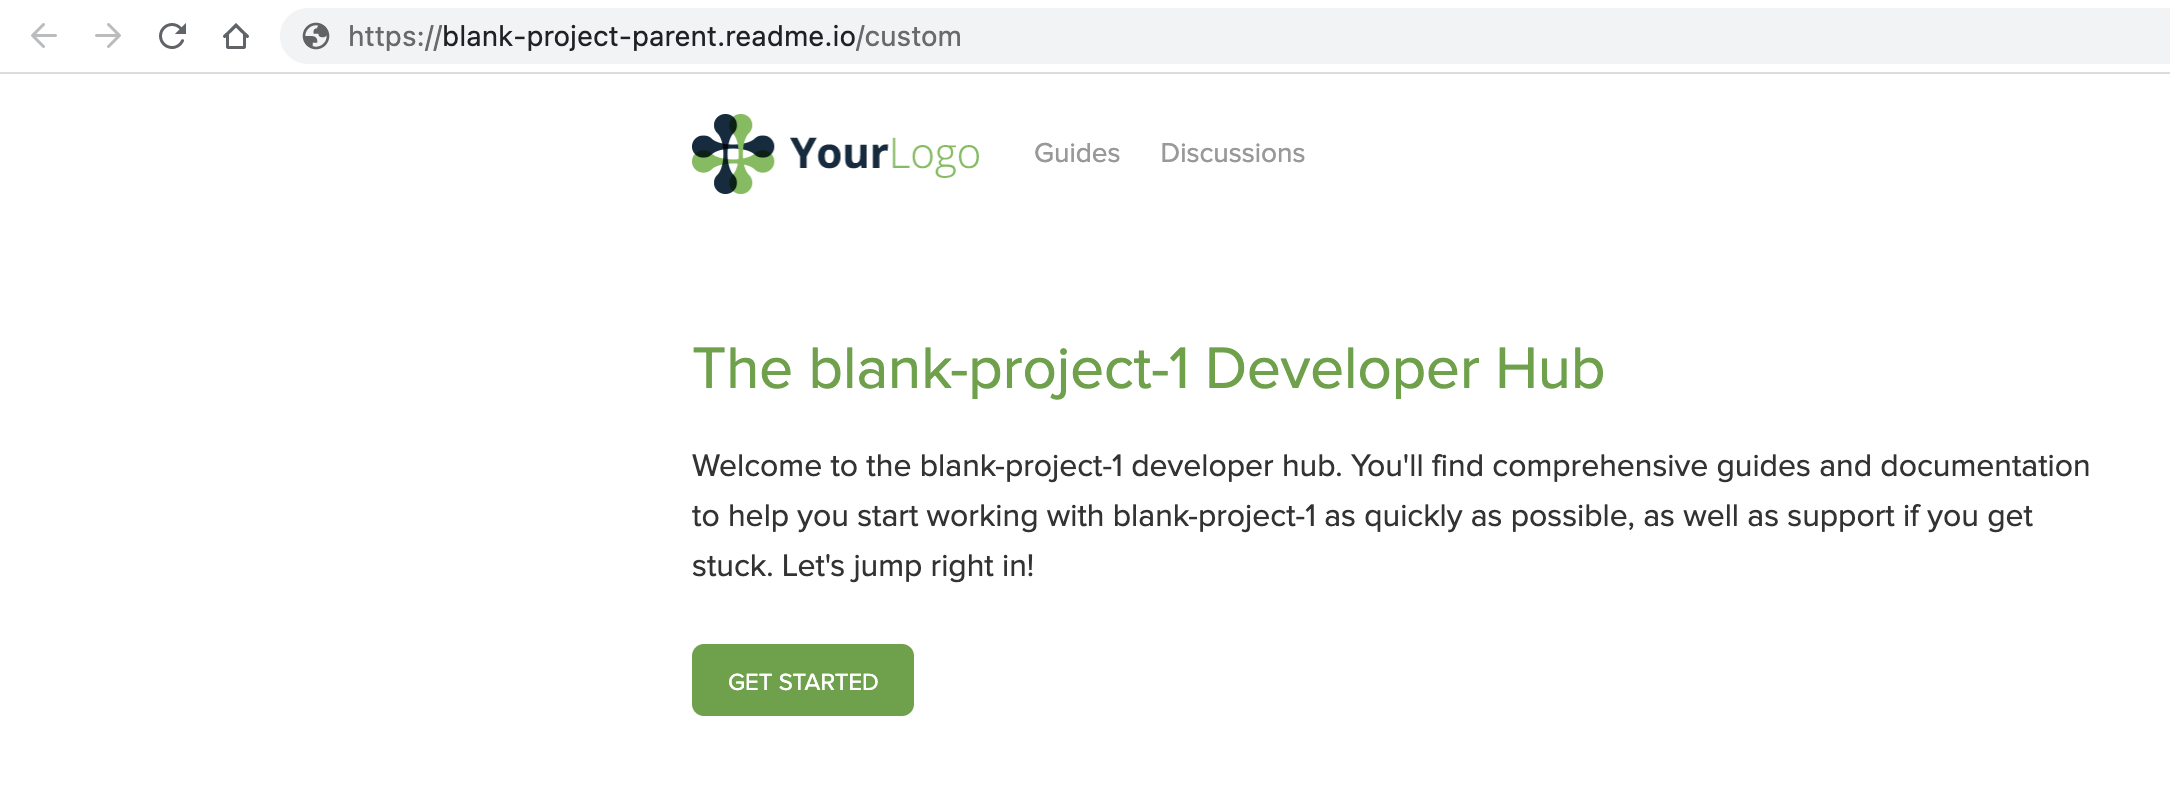 This child project's subdomain is `blank-project-1`, but the URL shows `custom`